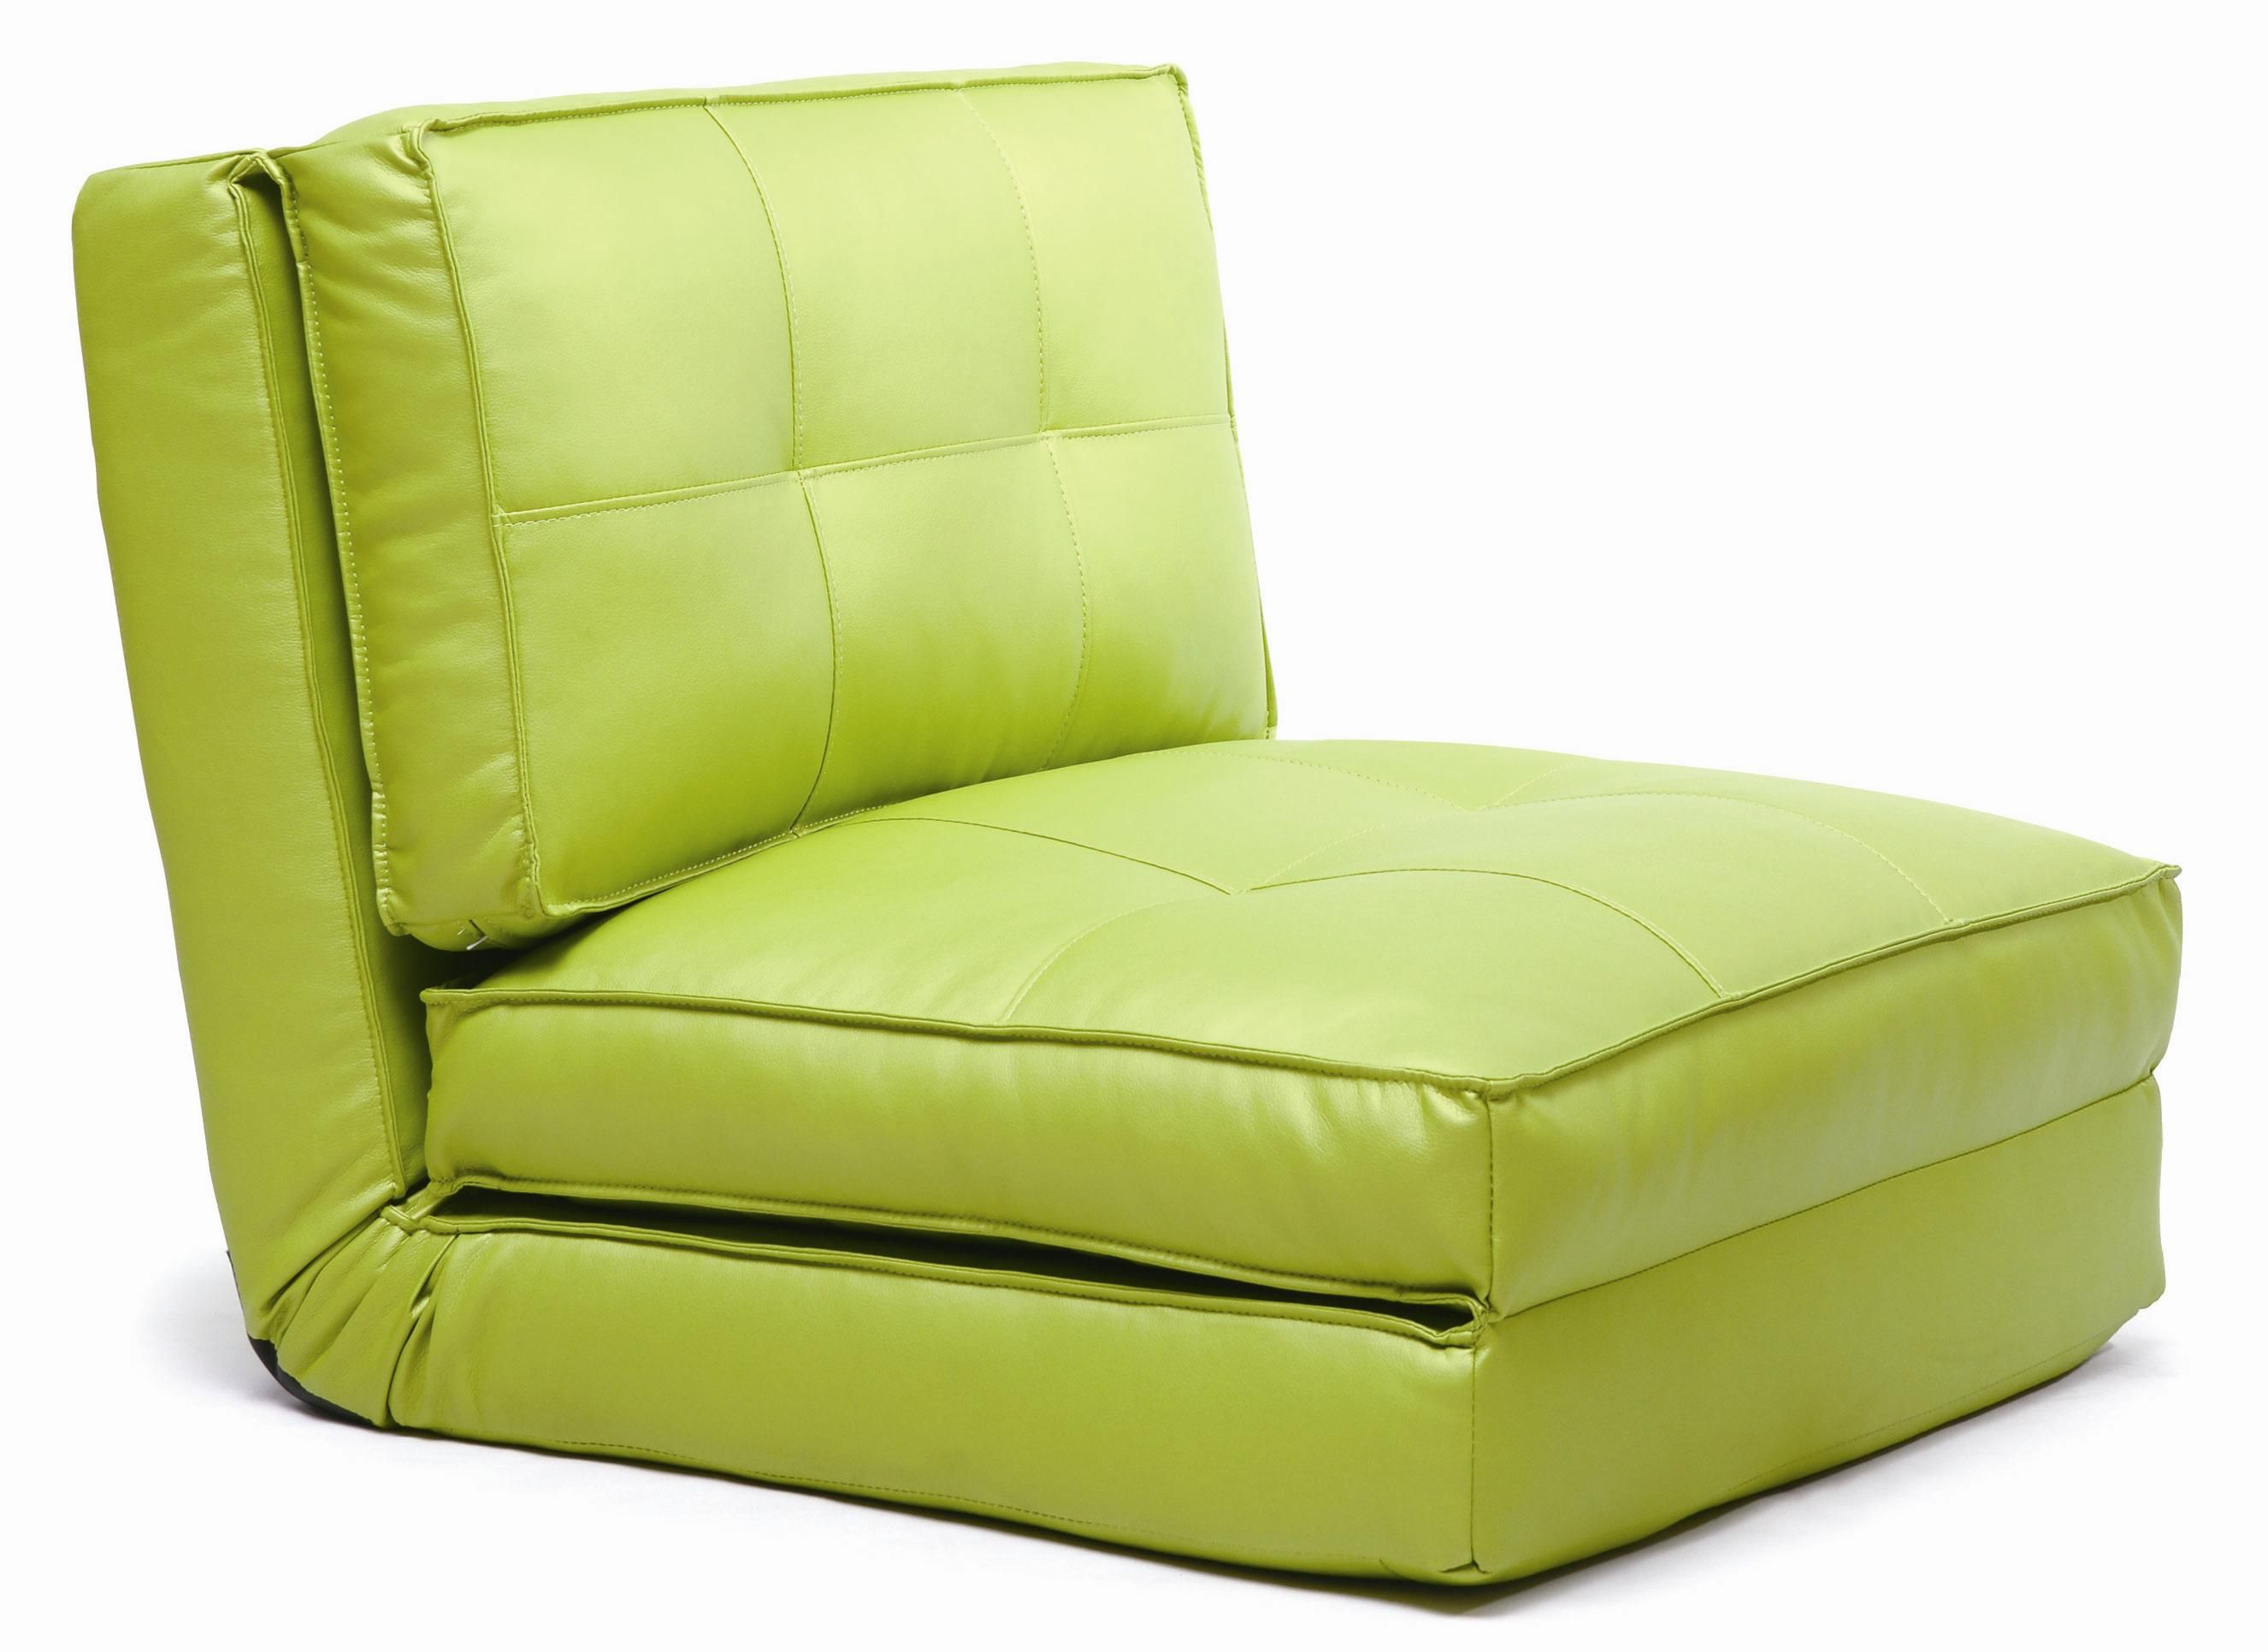 Sofabed 09 Available In Lime, Bright Color Pu Materials Ca Fire